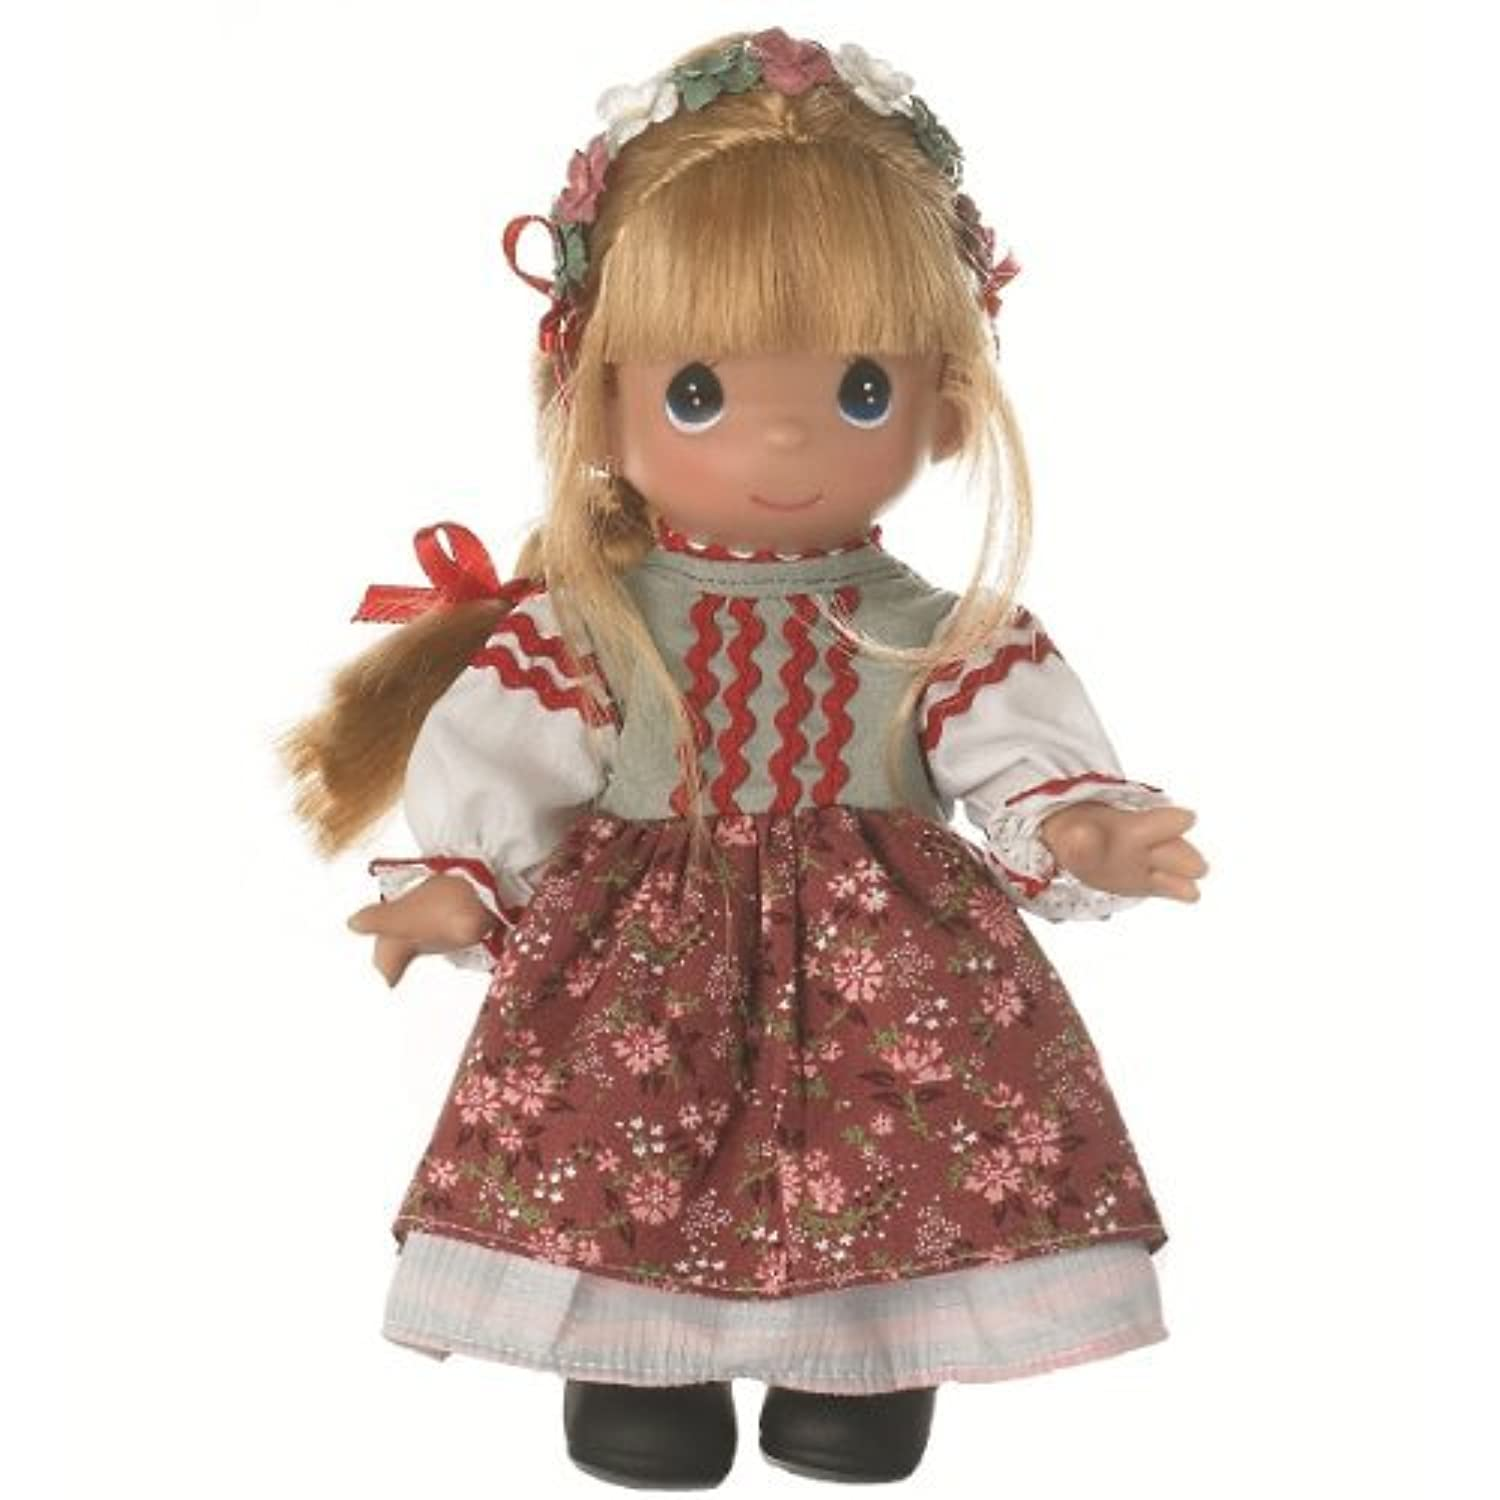 The Doll Maker Poland Baby Doll Pelagia 9 [並行輸入品]